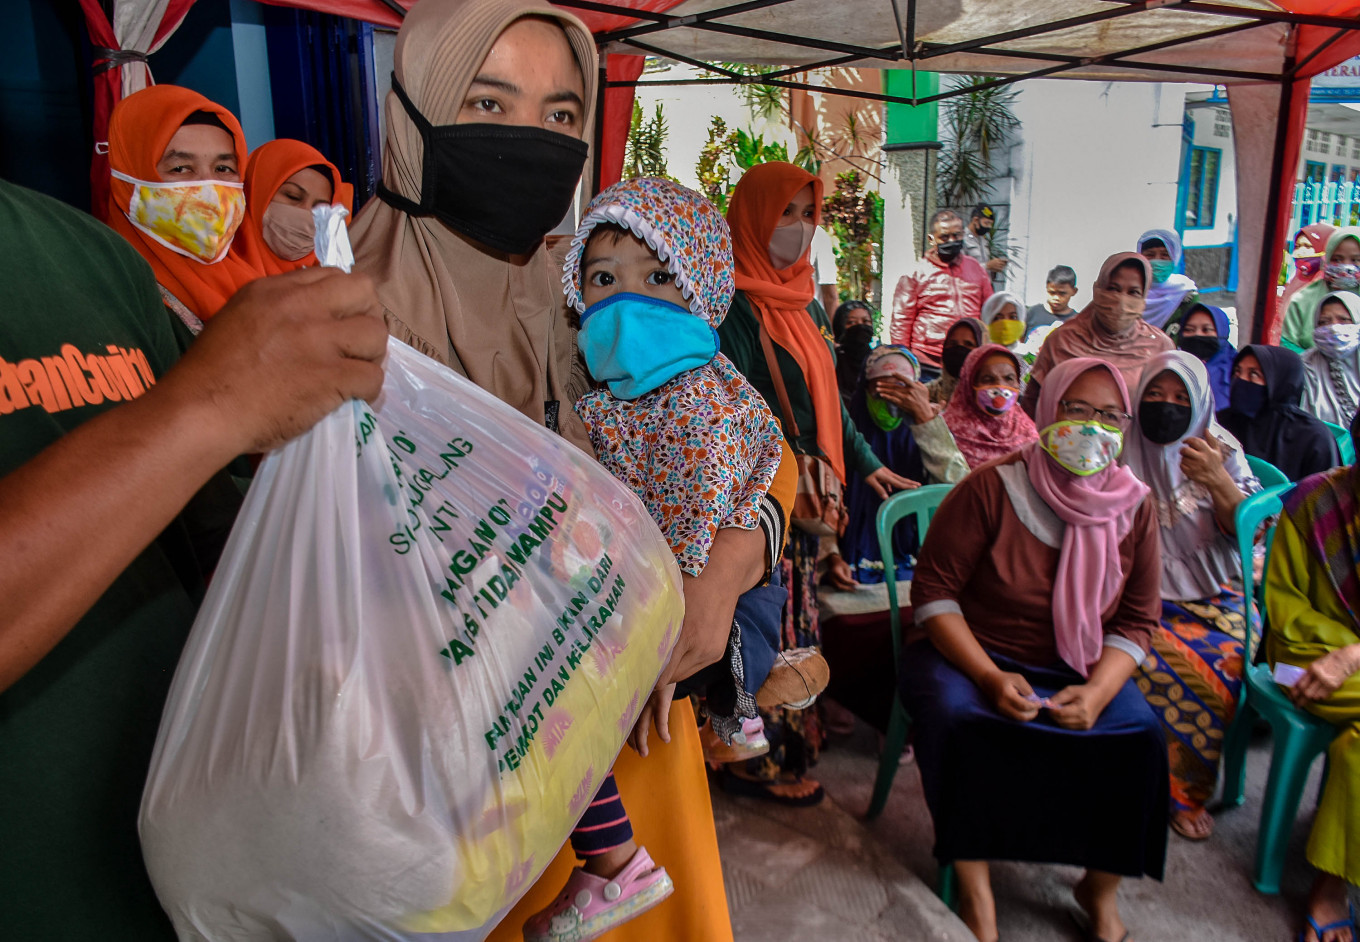 Govt disburses 26% of pandemic stimulus, mostly to fund social aid programs